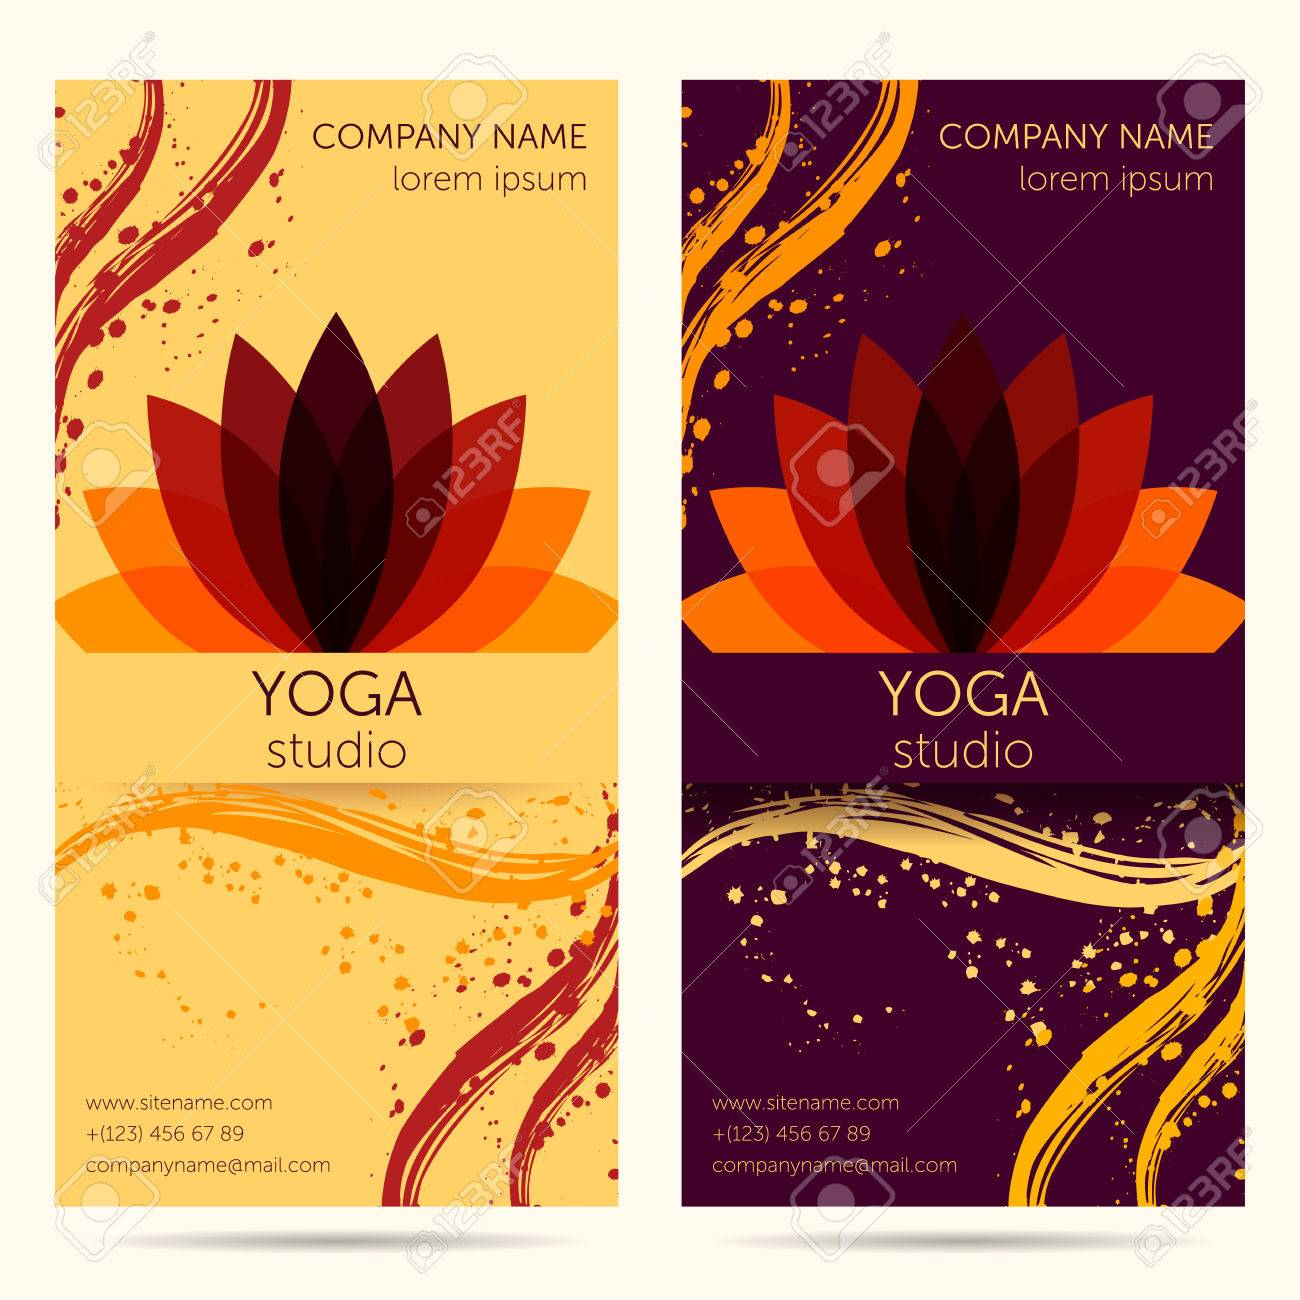 Design Template For Yoga Studio With Abstract Lotus Flower Design Royalty Free Cliparts Vectors And Stock Illustration Image 55603133